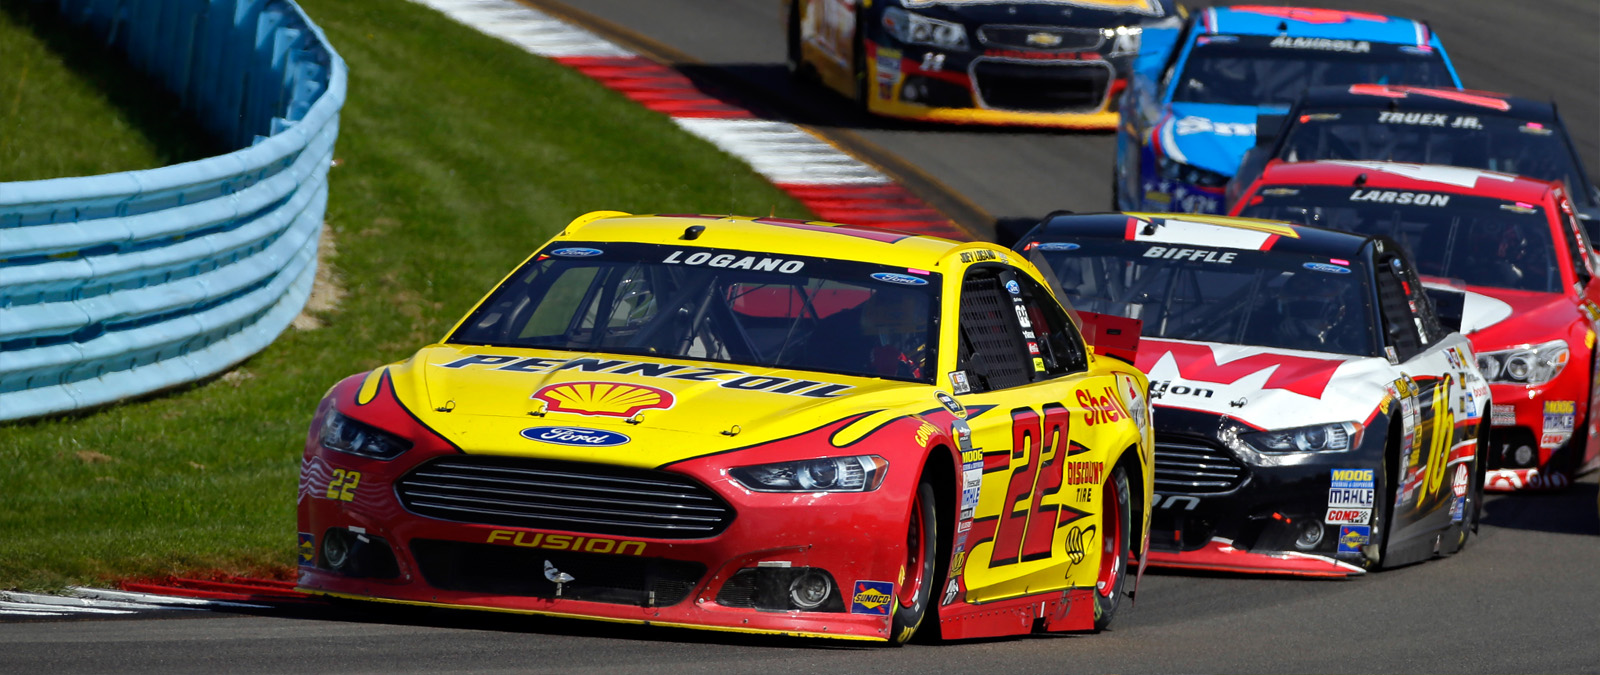 Joey Logano Racing WG August 2014